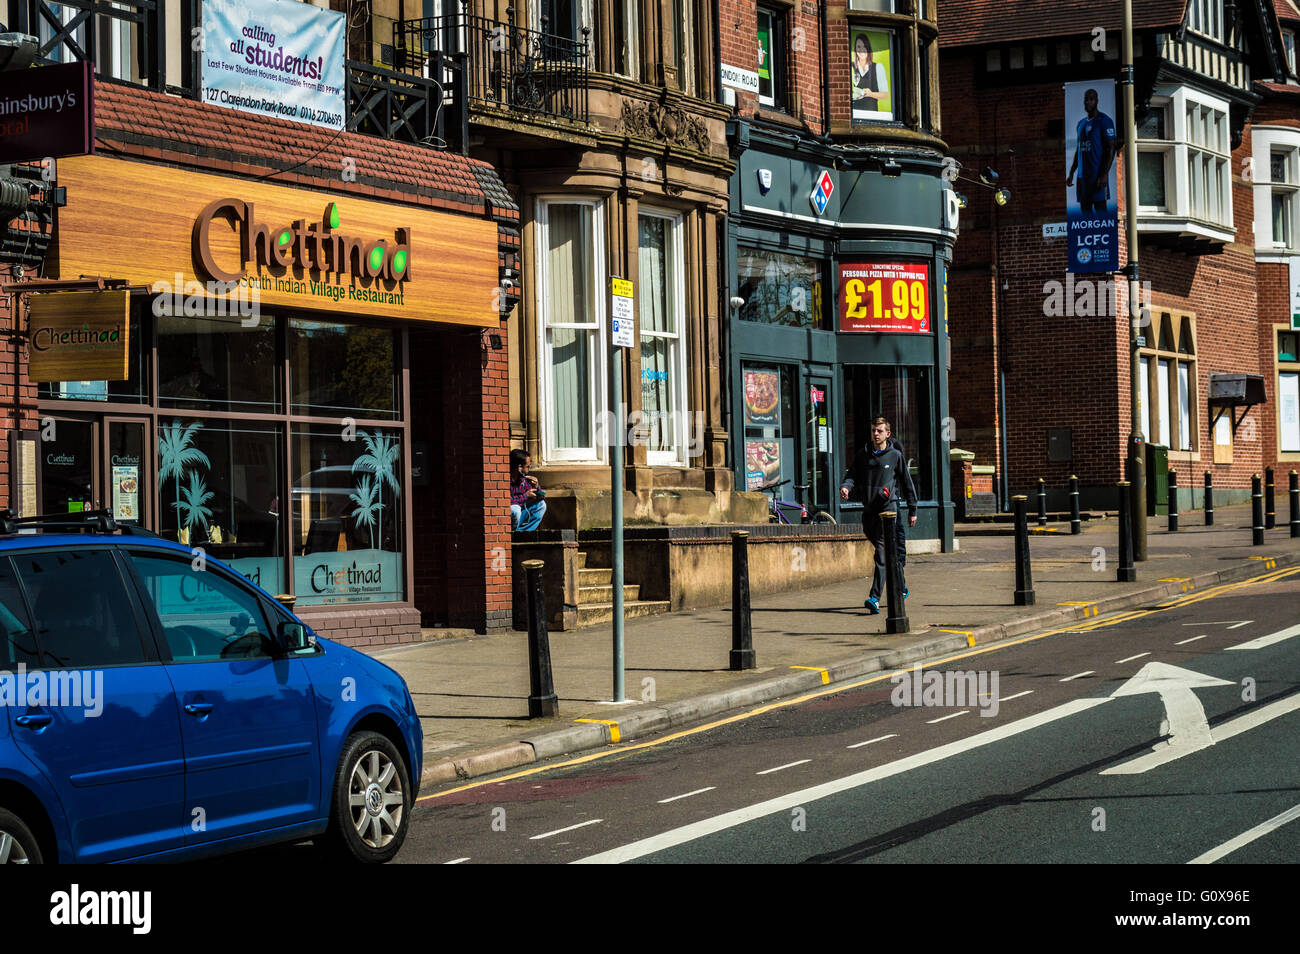 London Road, Leicester near Evington Road, Junction showing Chettinad South Indian Restaurant Domino's Pizza - Stock Image